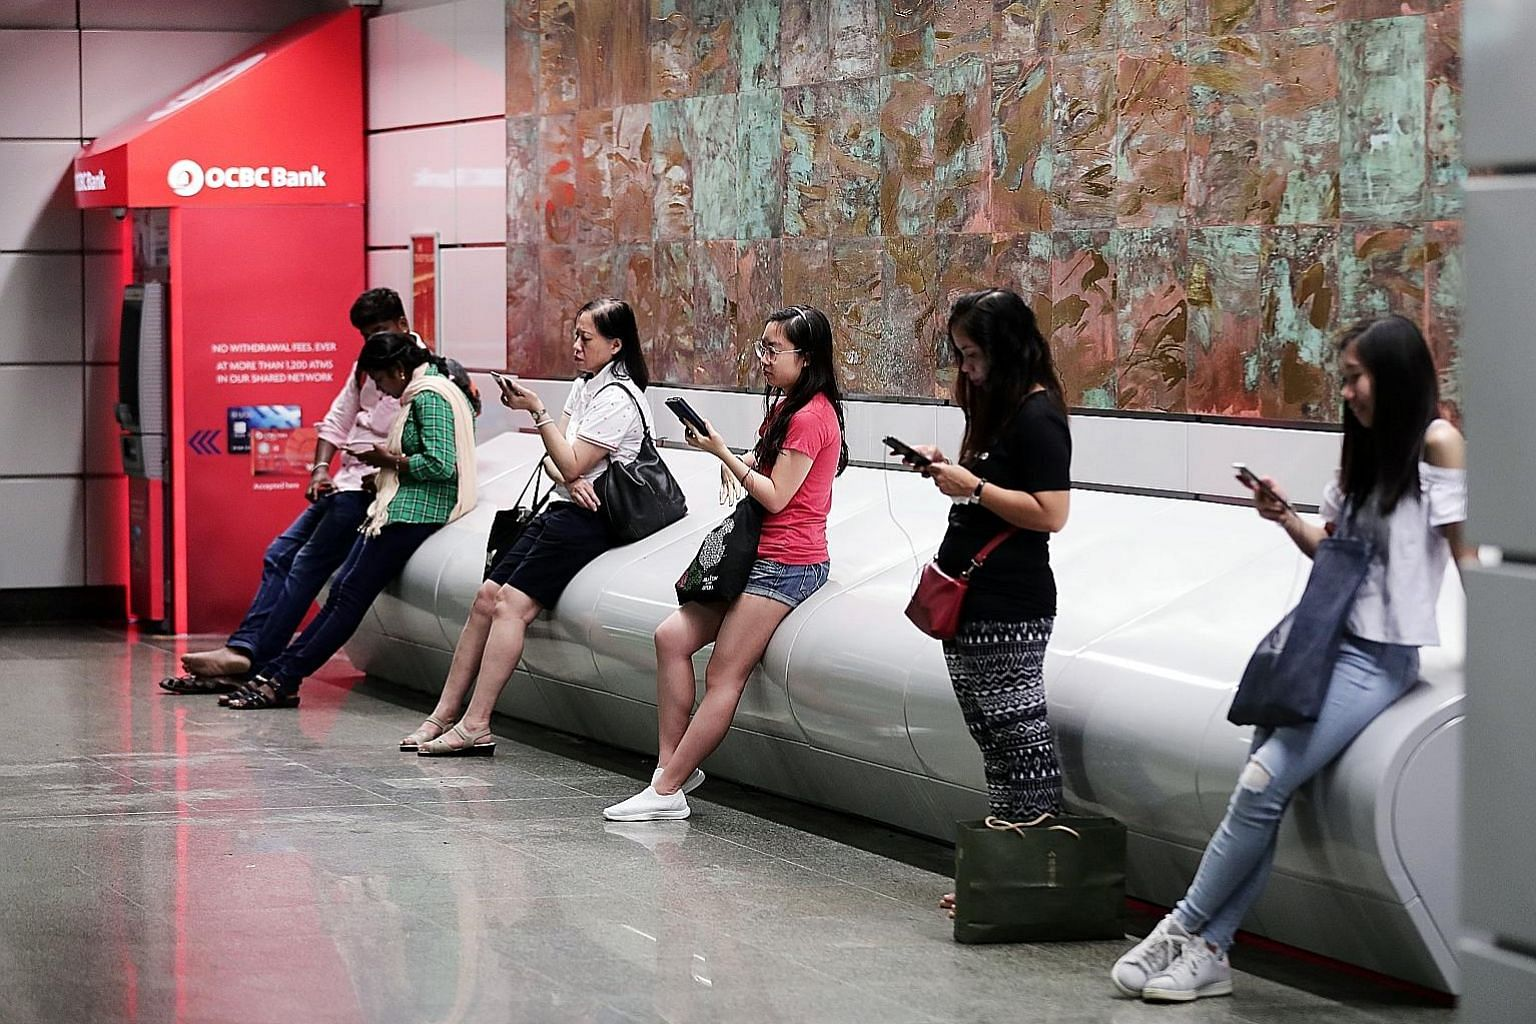 One of the reasons why Singapore telcos are more likely to capture maximum value from 5G compared with their regional peers is that consumers here are tech-savvy and willing to pay more for enhanced experiences, says A.T. Kearney partner Nikolai Dobb